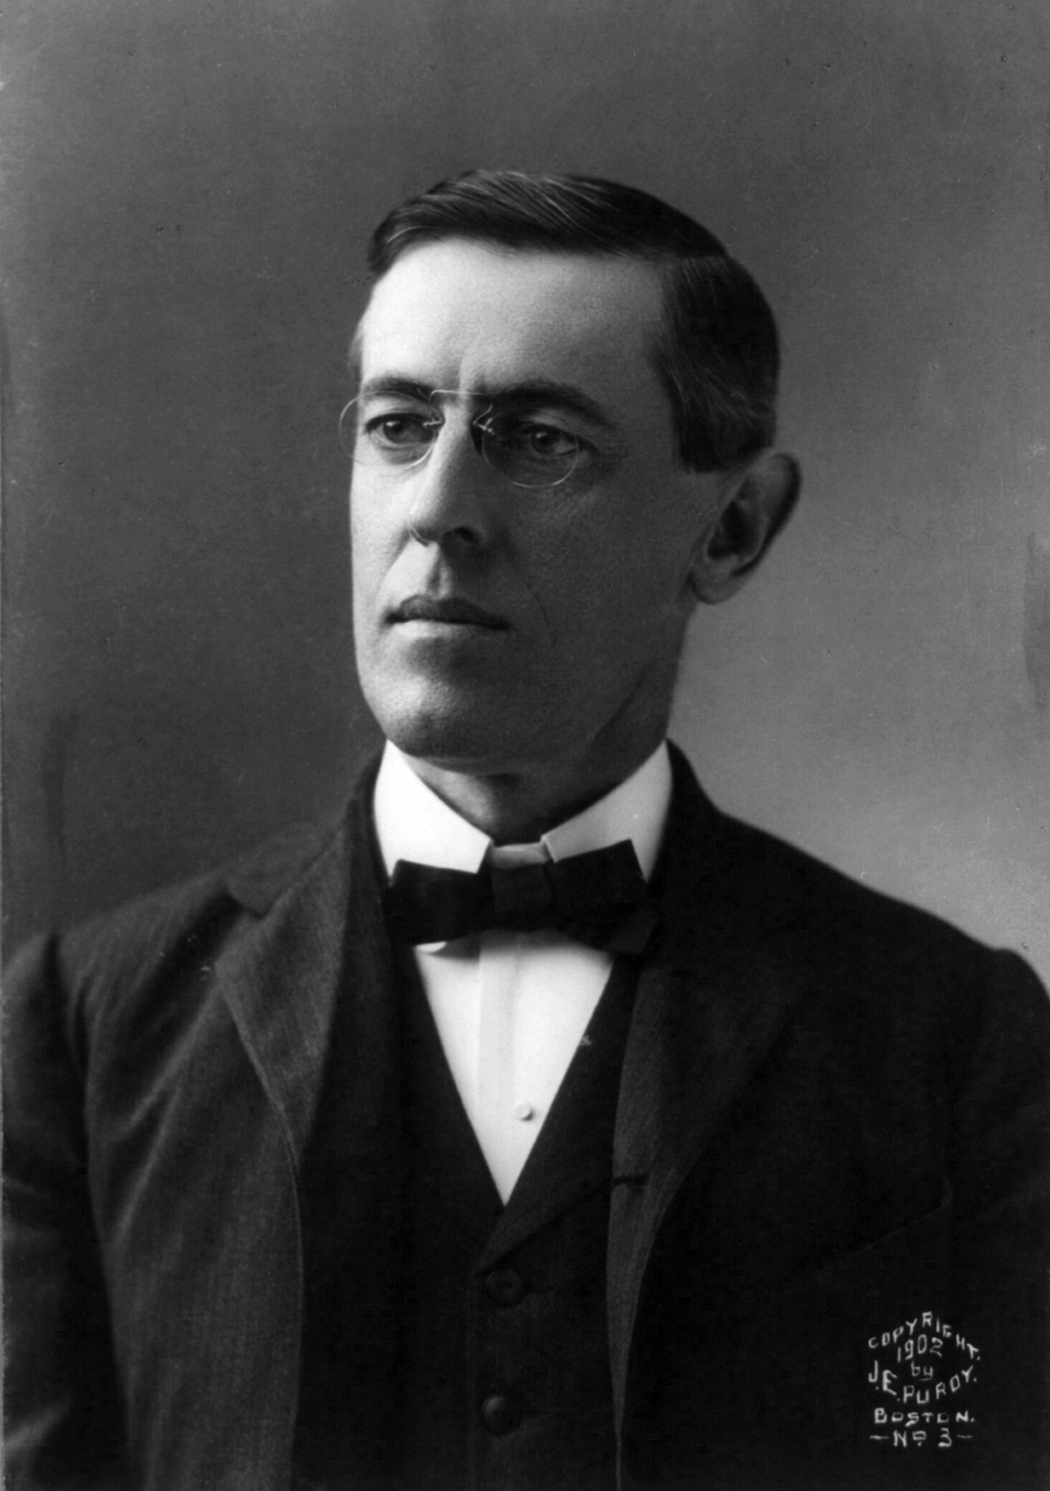 rhetorical analysis of president woodrow wilsons Woodrow wilson's messages to congress-1914 and 1917 read the following selections and answer the questions be prepared for class discussion woodrow wilson was president of the united.